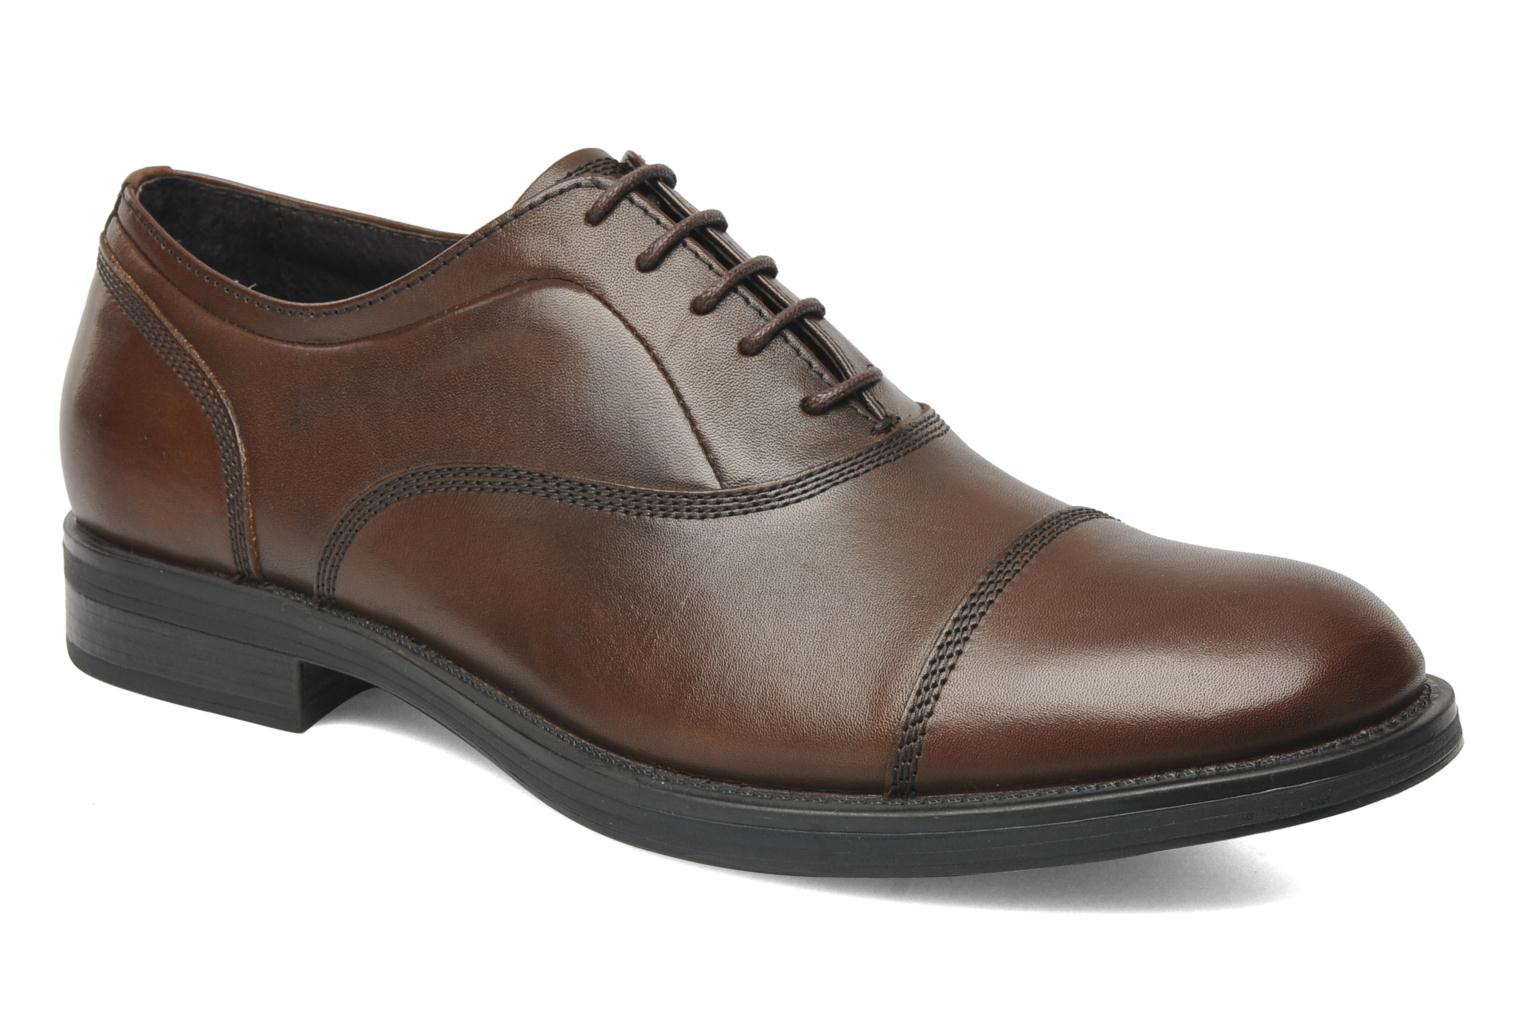 CHAUSSURES - Chaussures à lacetsStonefly 3sJUm466A